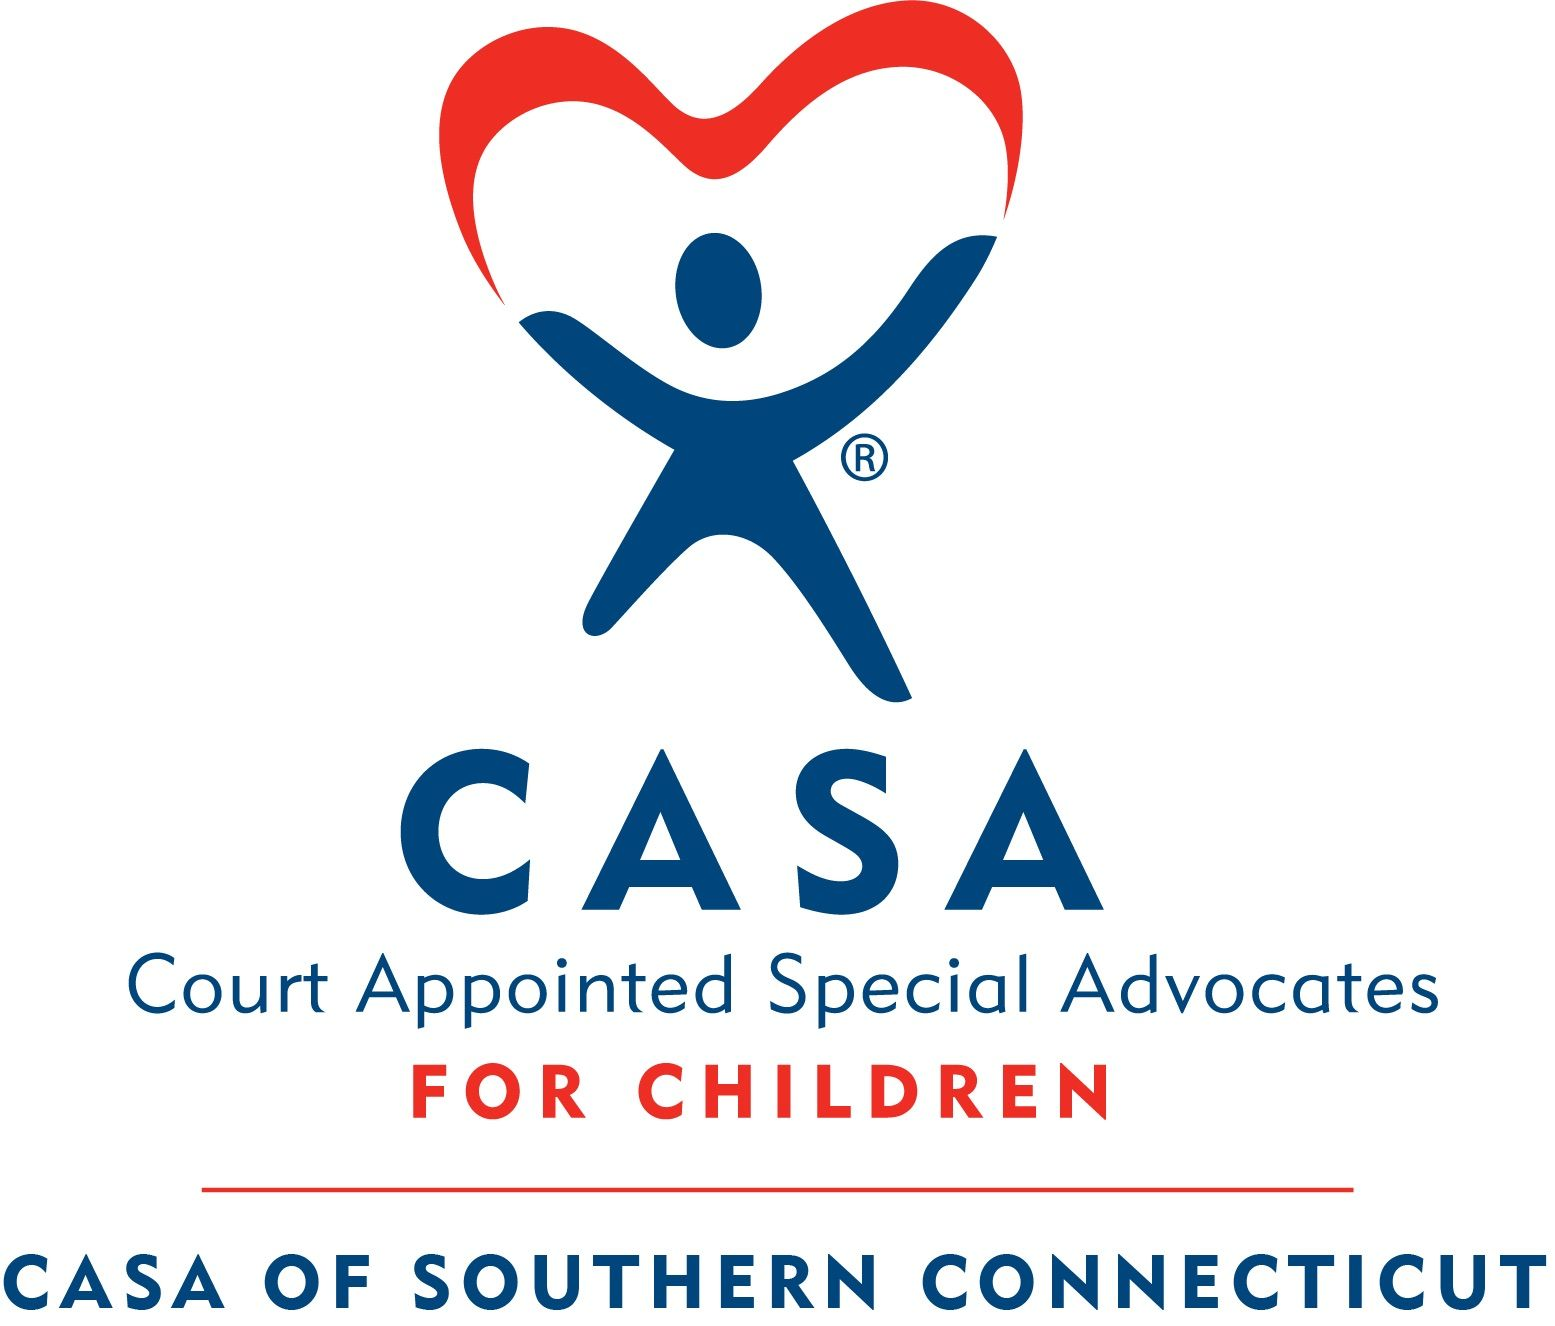 CASA of Southern Connecticut is participating in the Great Give; please donate now!